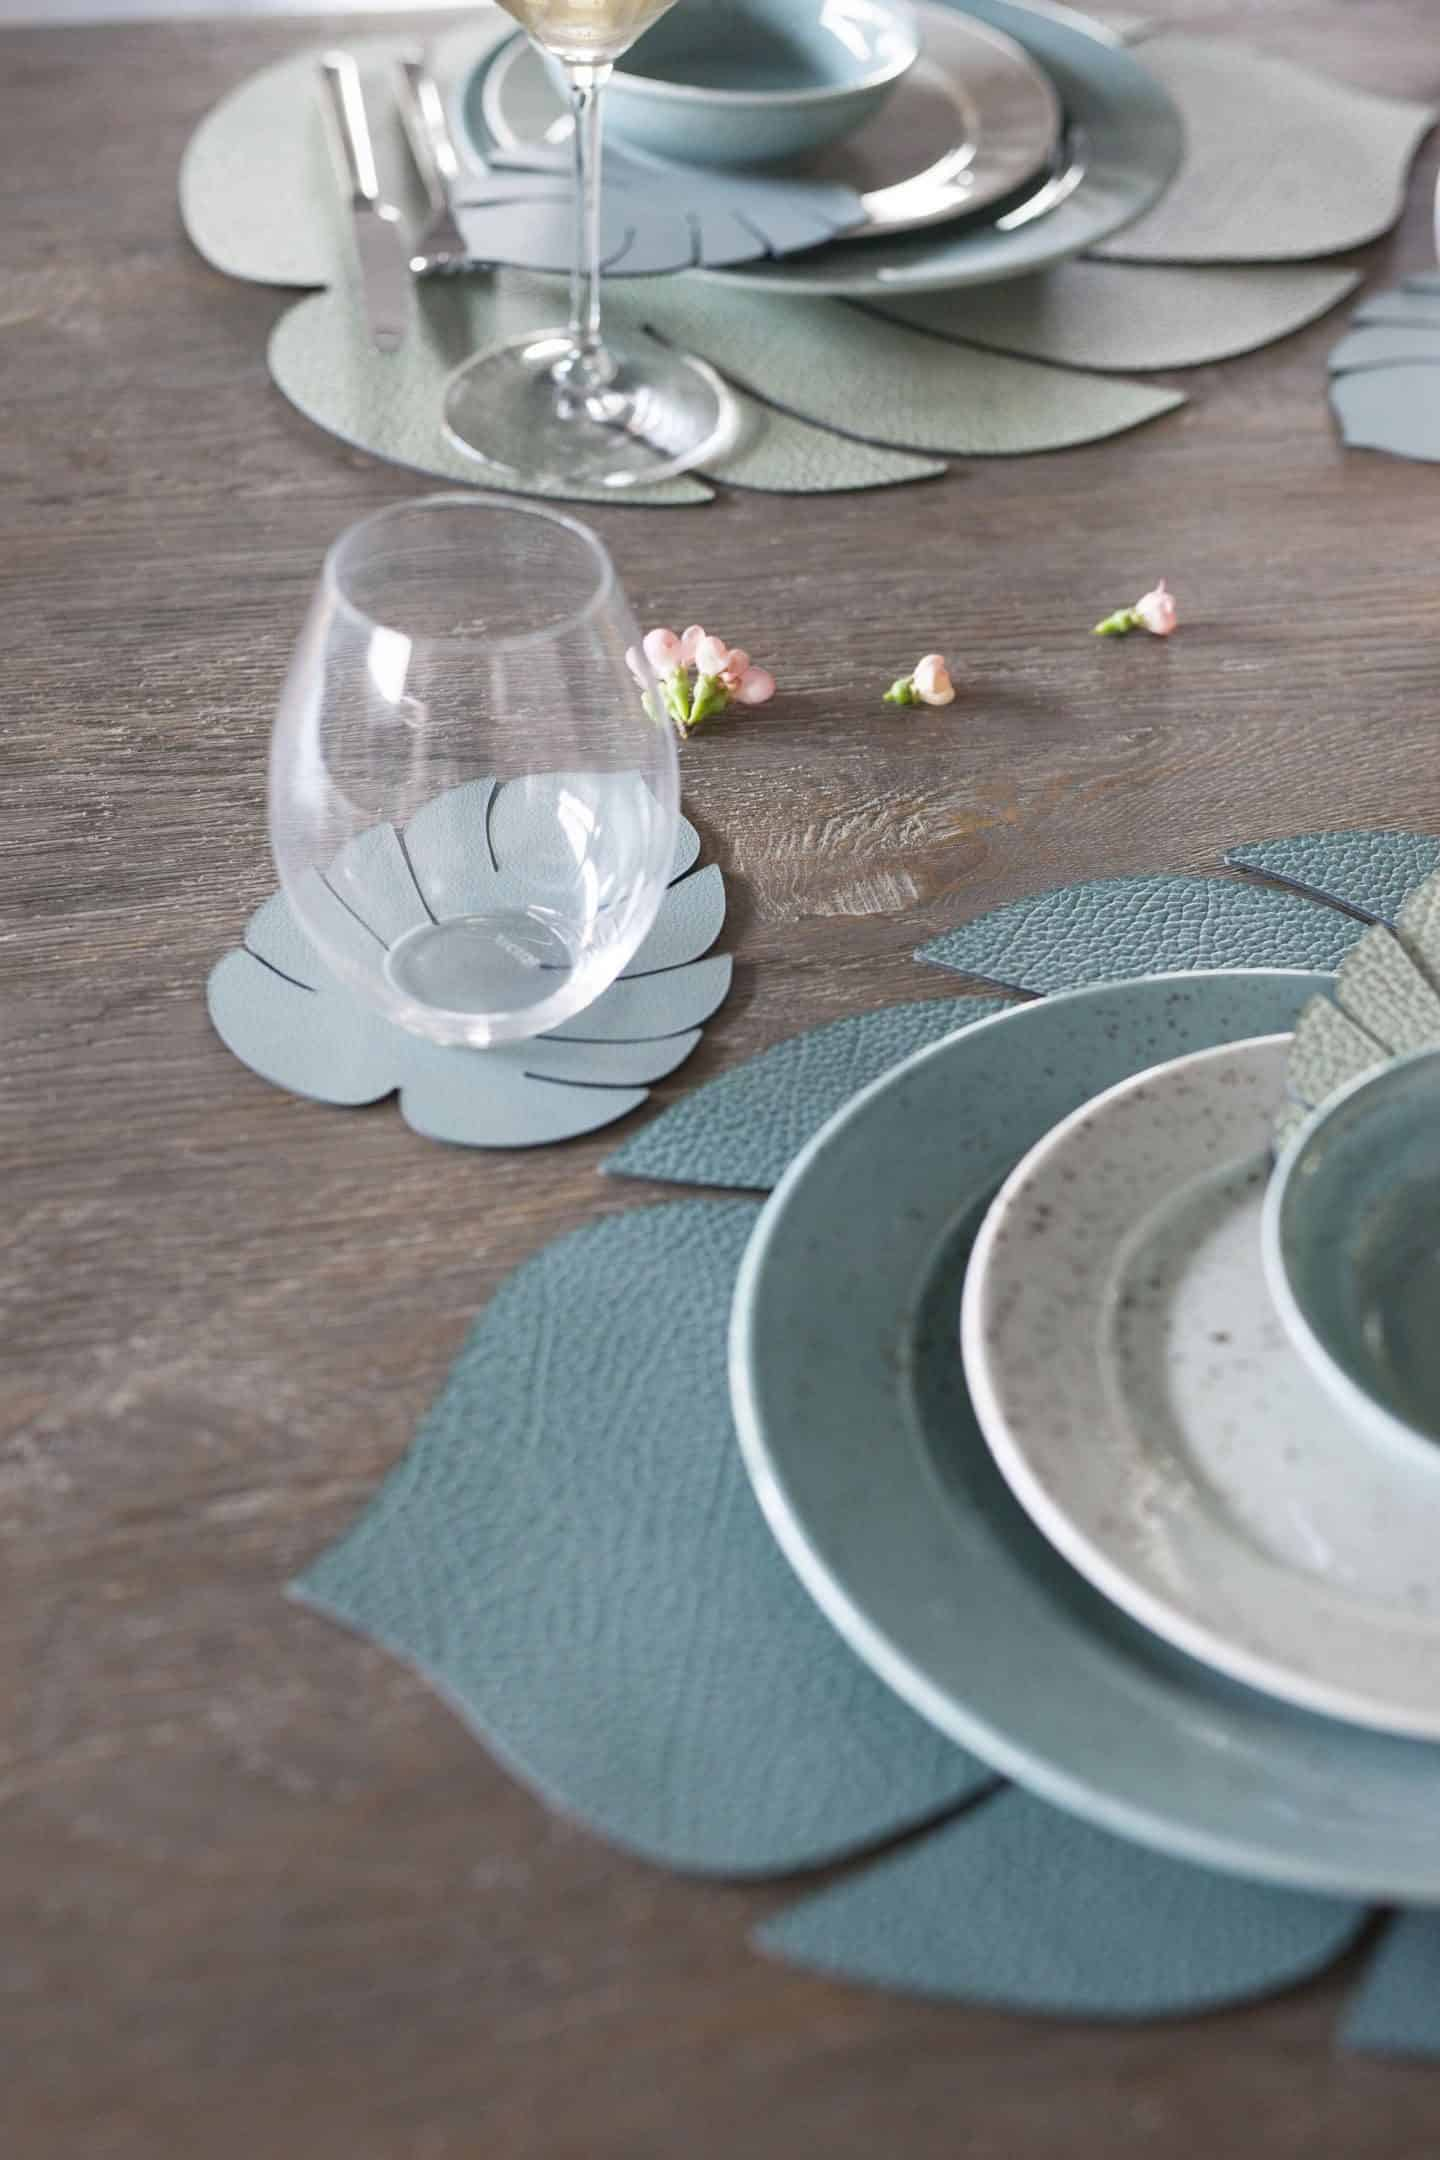 Green recycled leather placemats in th eshape of monstera leaves by LIND DNA